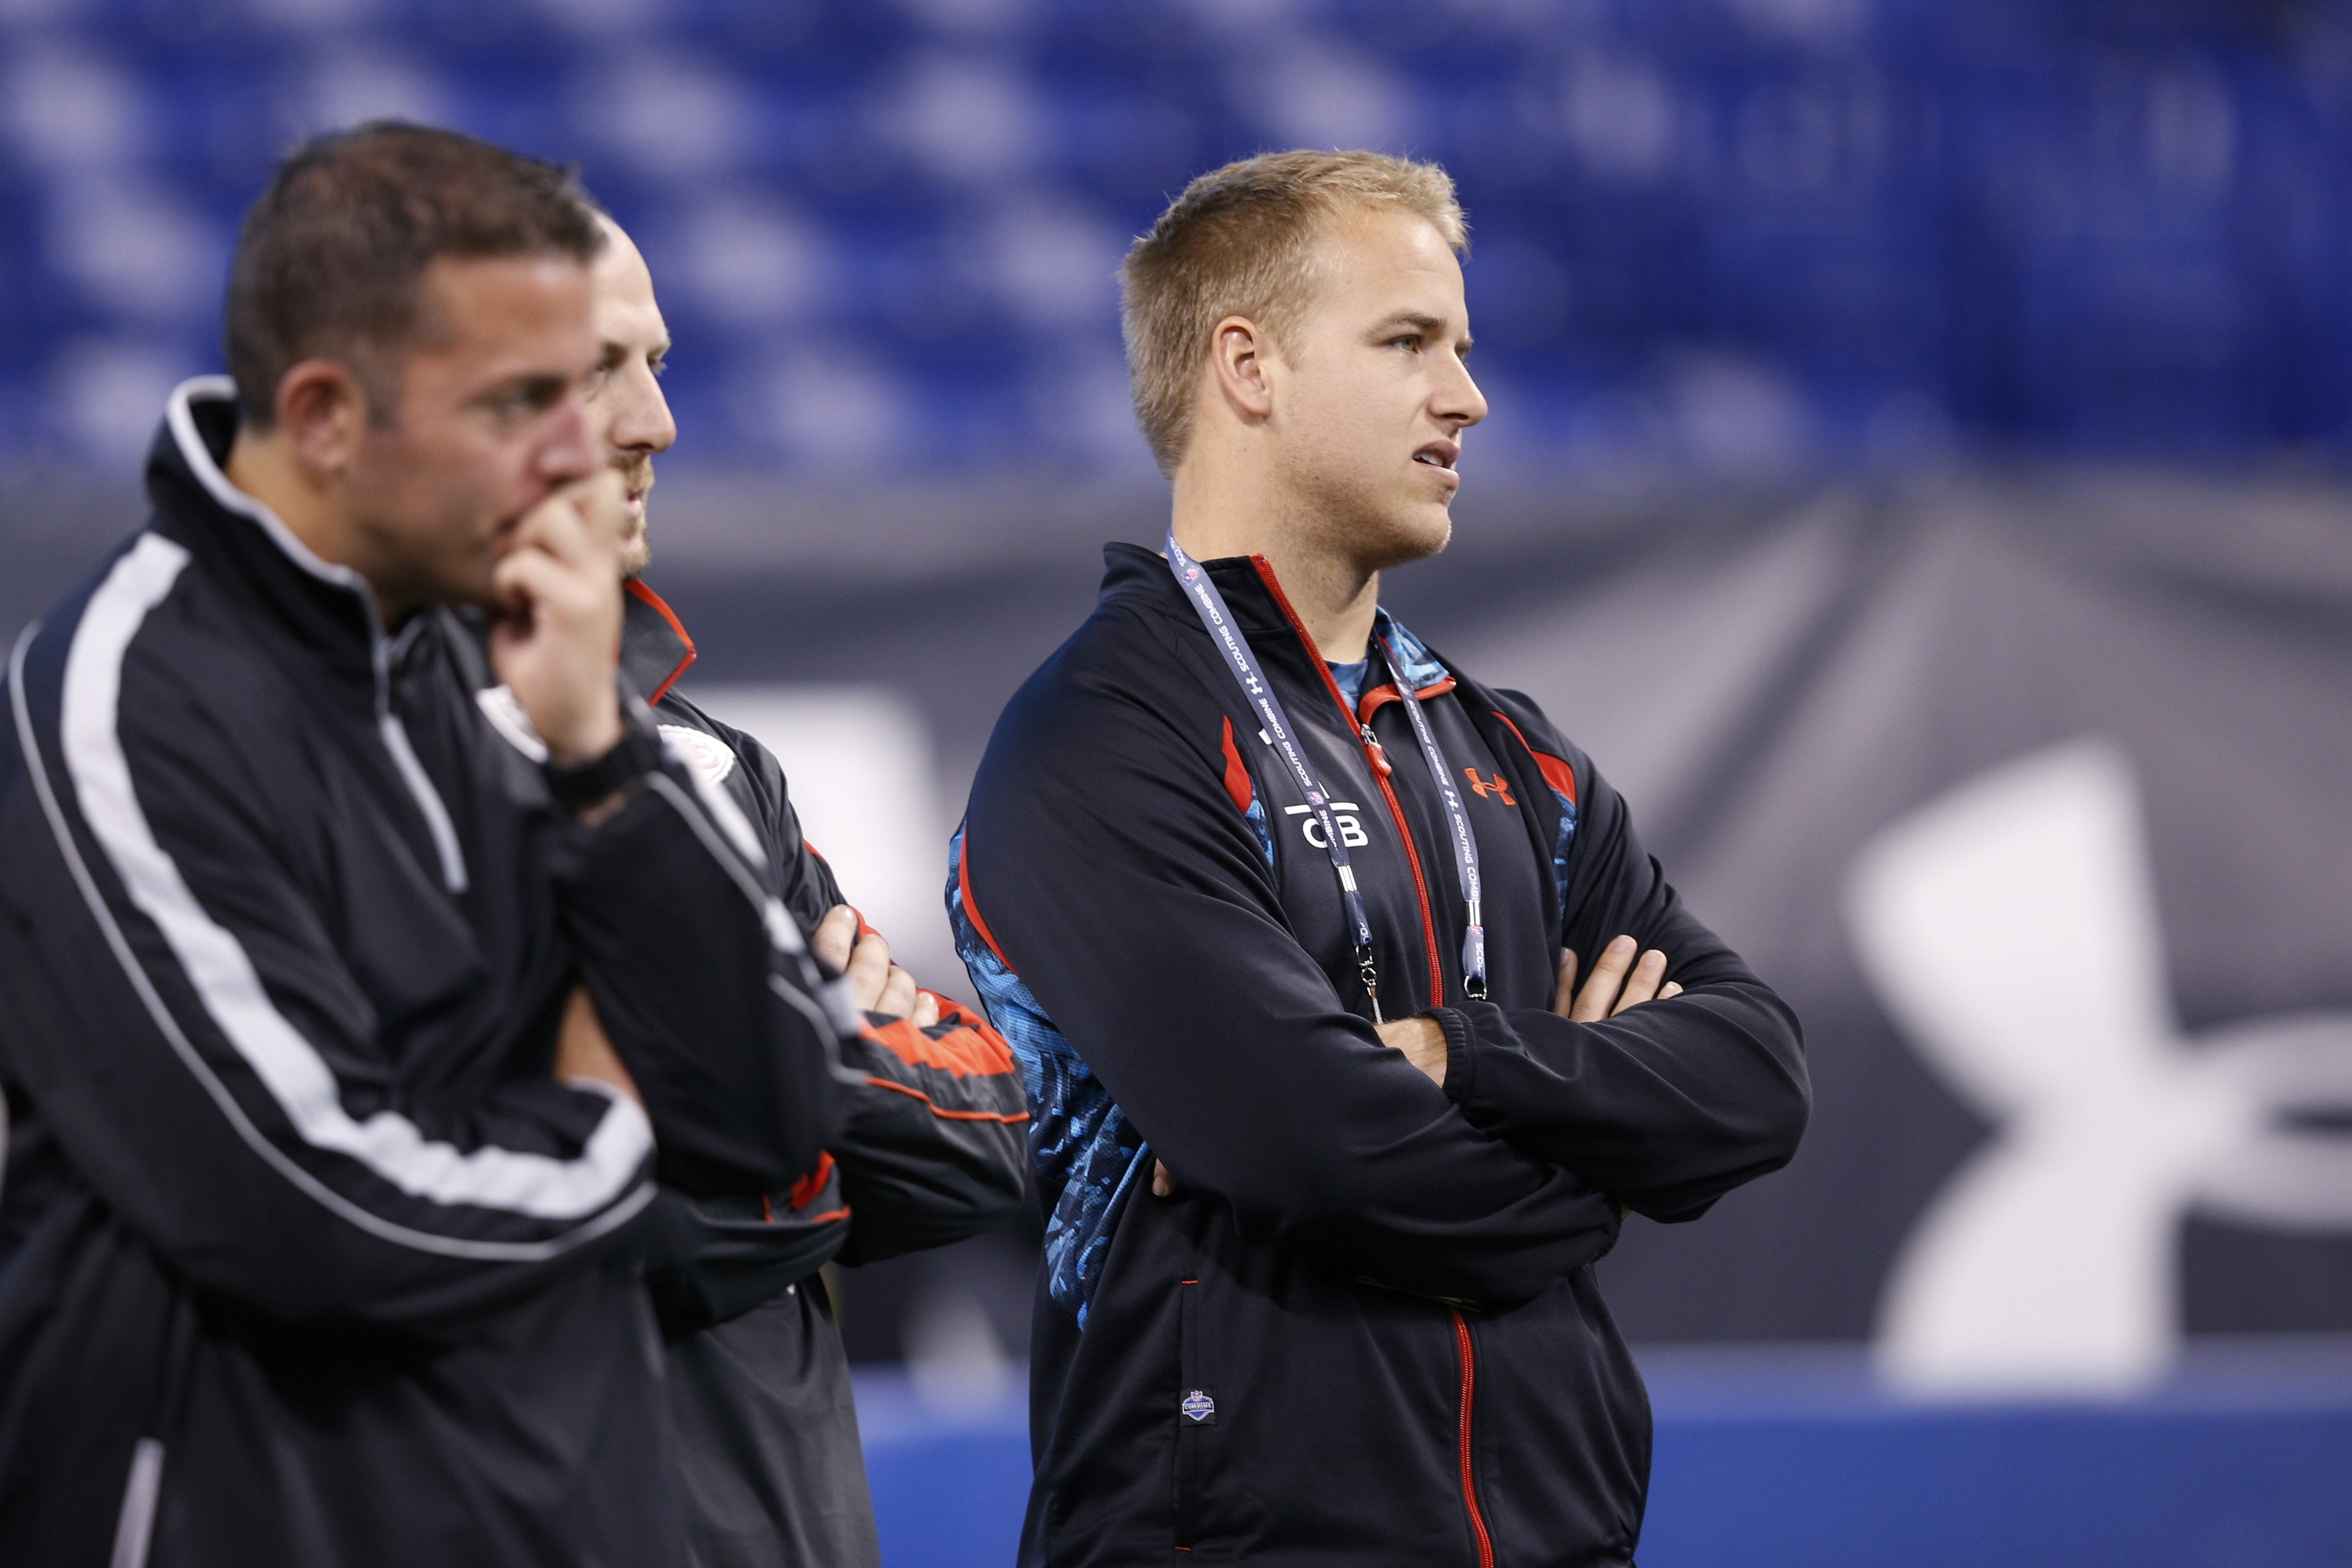 Matt Barkley watches the workouts during the NFL scouting combine. (Getty)